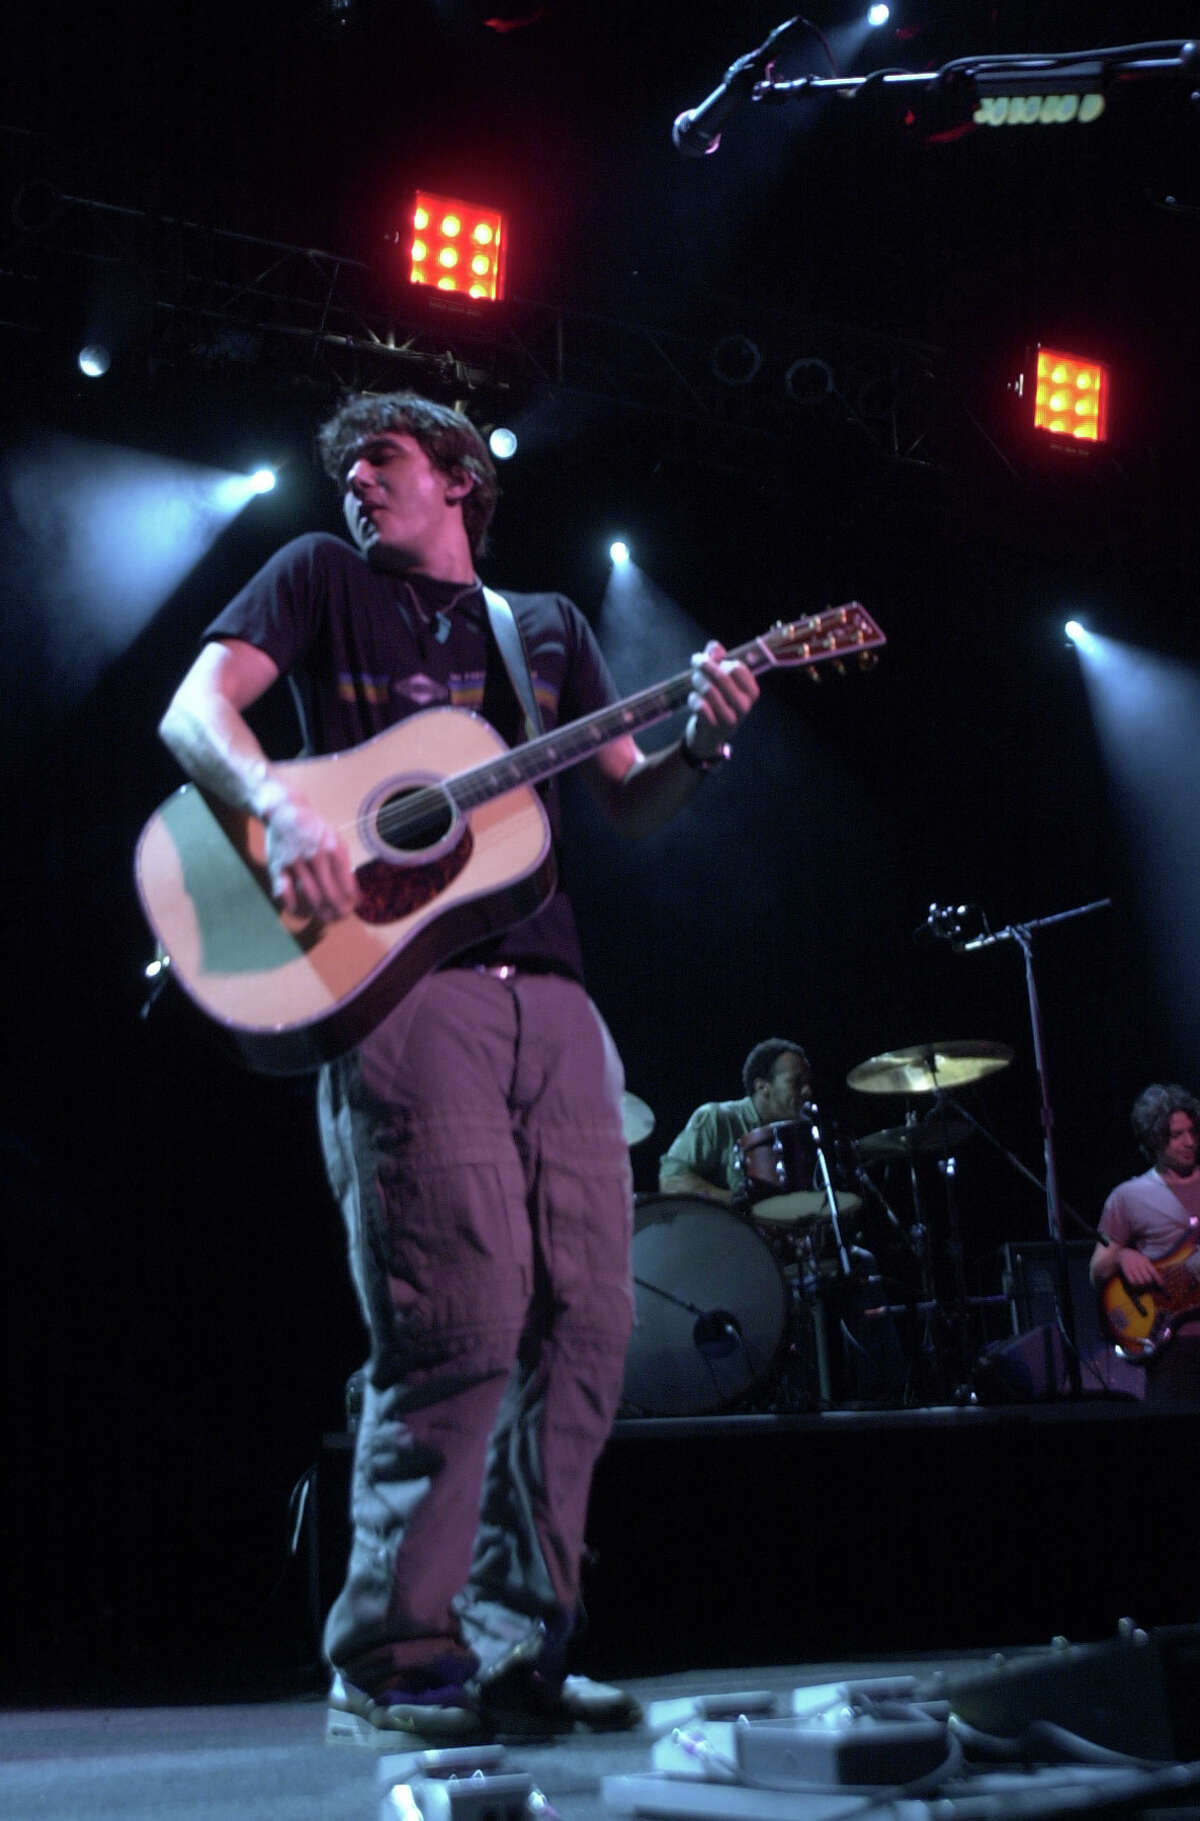 FILE PHOTO - 8/20/02, Pop singer John Mayer performs at the Meadows Music Center in Hartford on Wednesday. His group headlined, while Counting Crows, and Stew opened the show.